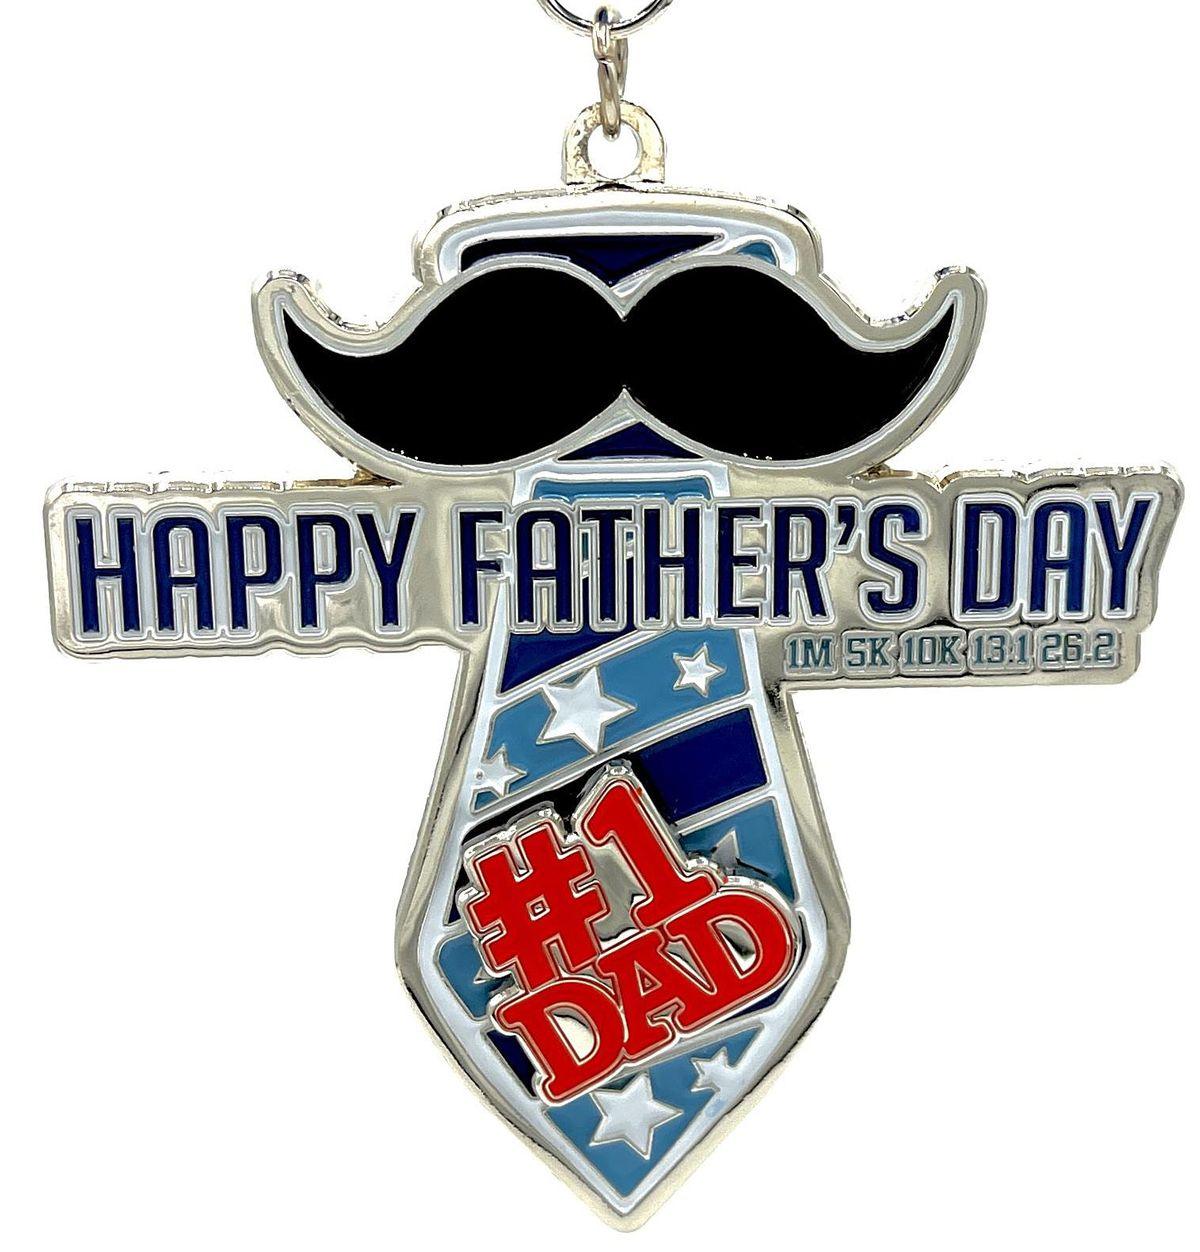 Father's Day 1M 5K 10K 13.1 26.2-Participate from Home. Save $5!